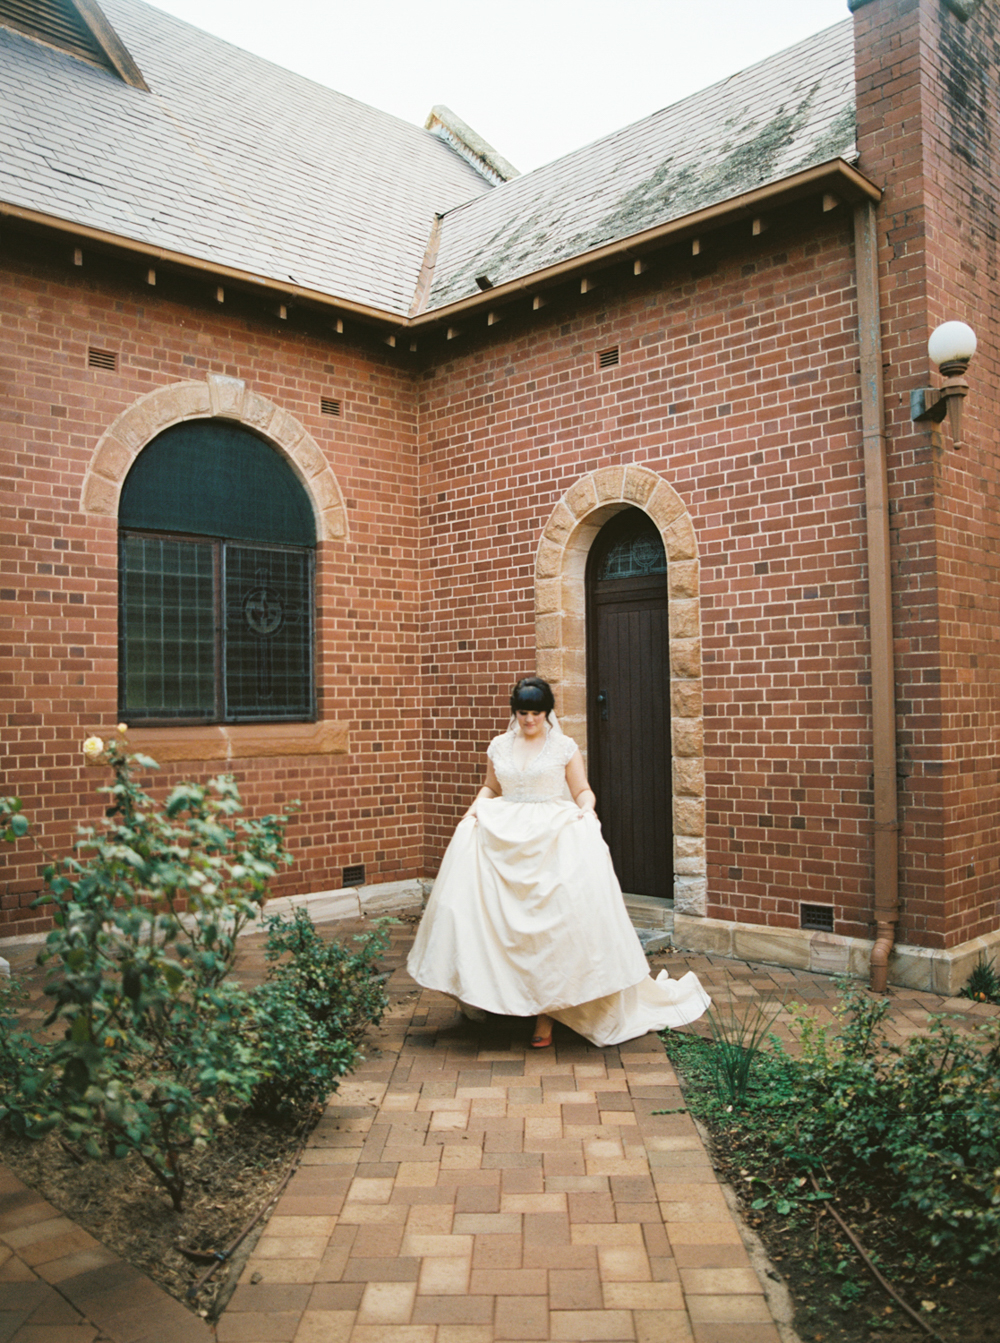 00036- Dubbo NSW Wedding Photographer Sheri McMahon.jpg